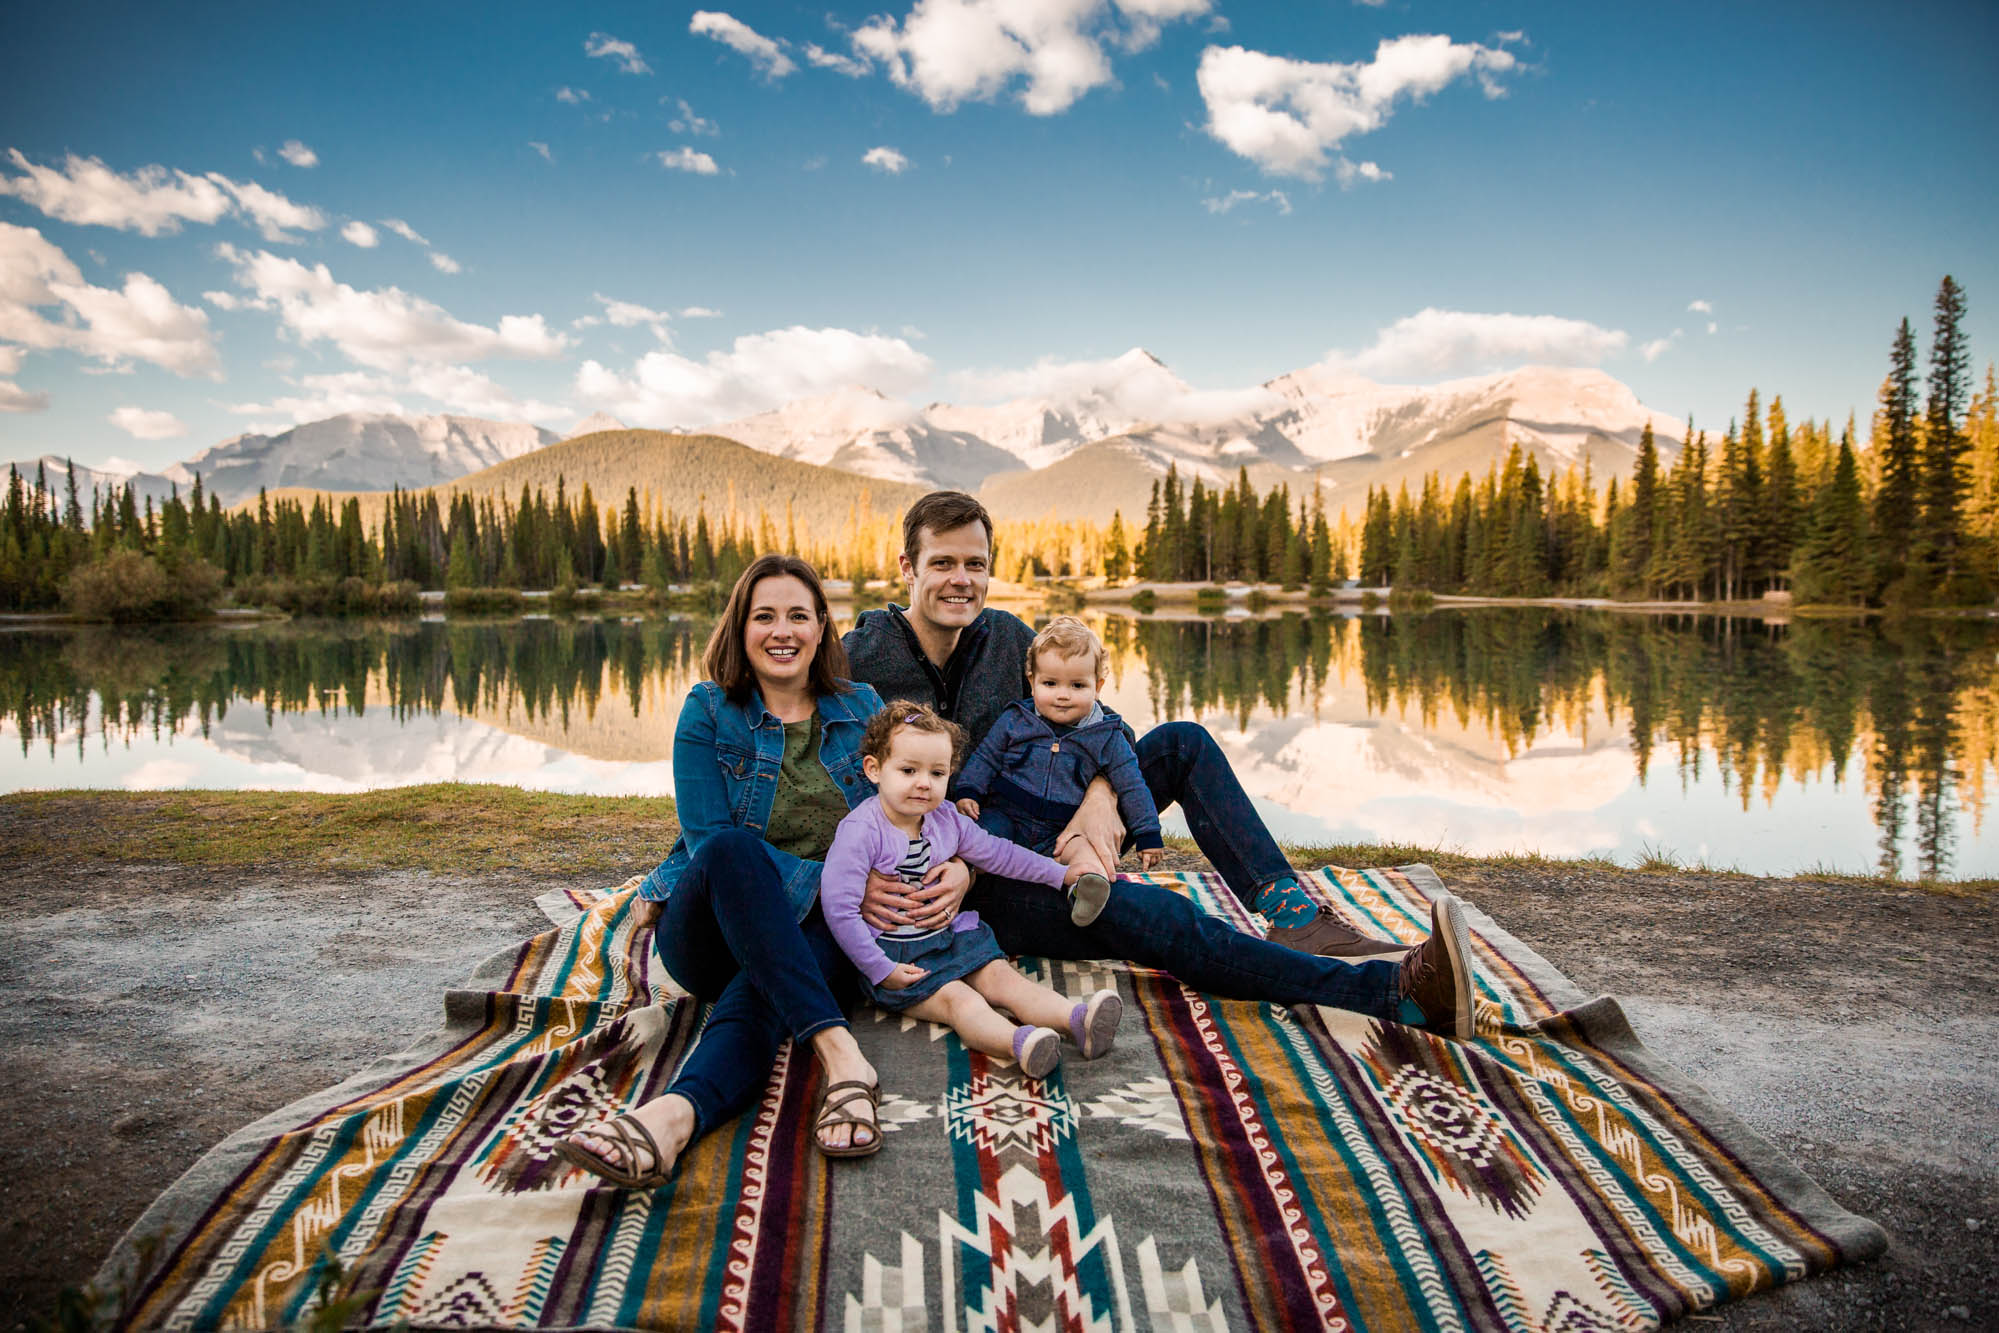 Calgary photographer, mountain locations for portrait photography, a family in front of water and mountains